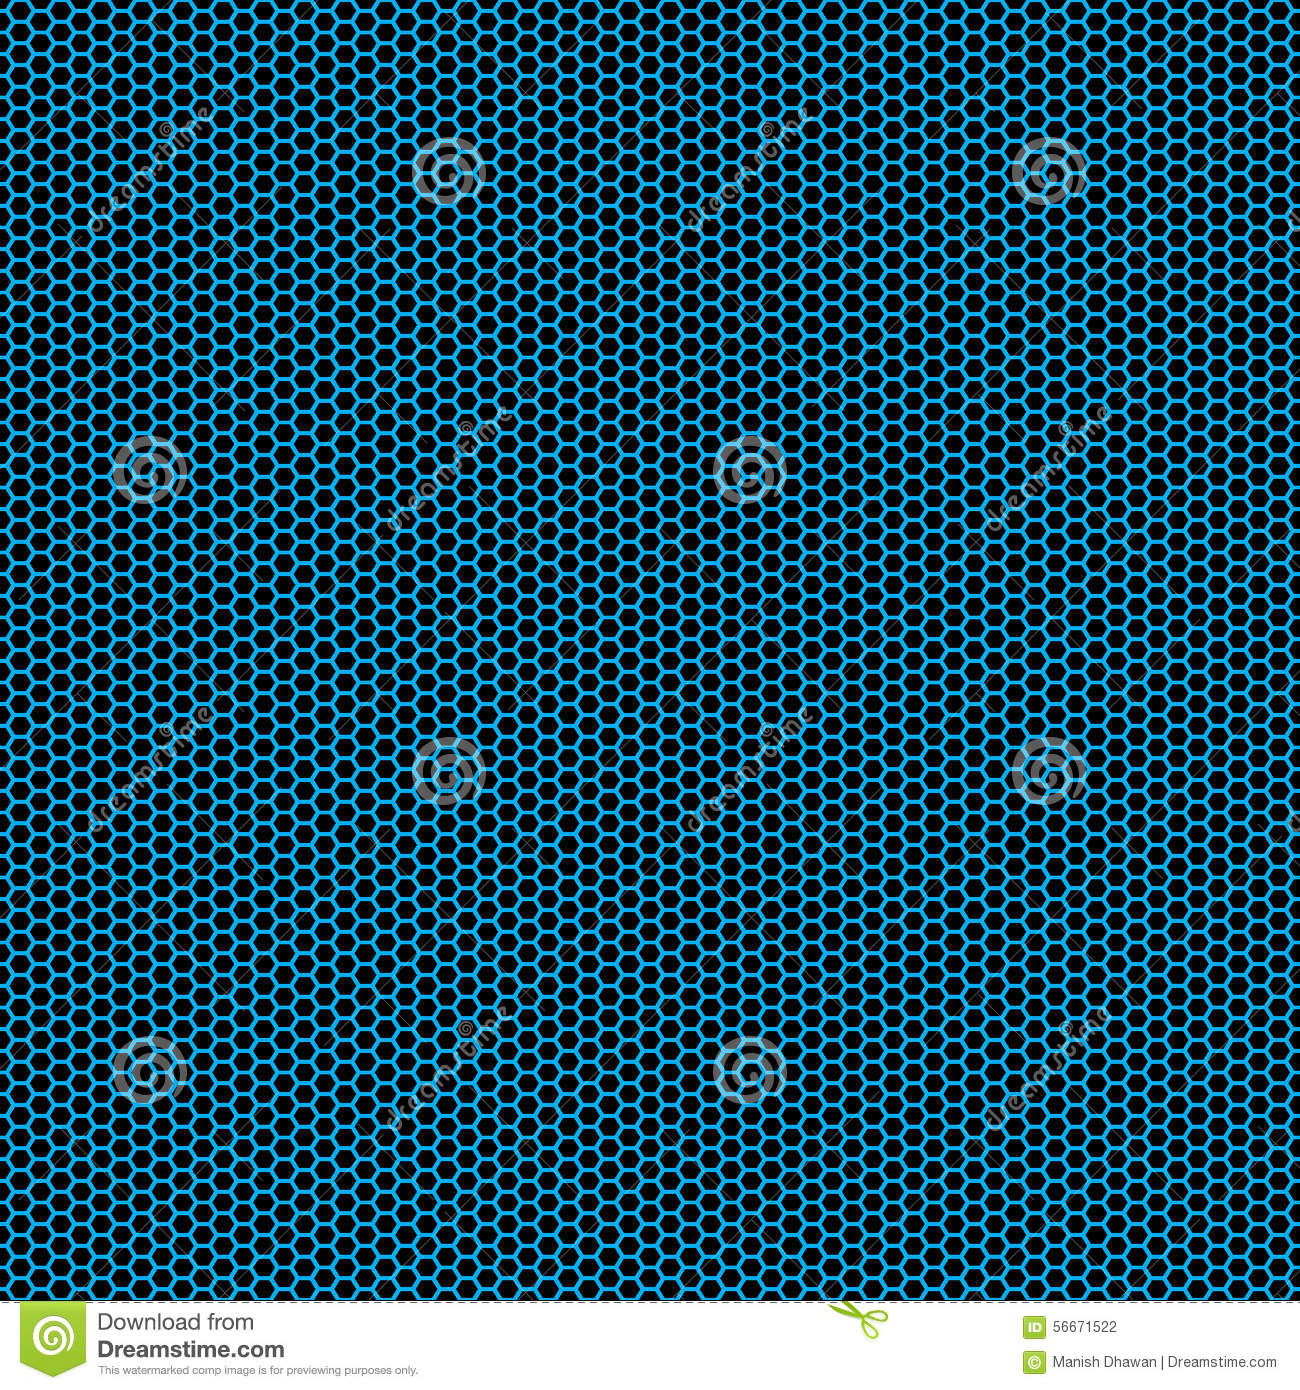 Beautiful Seamless Aqua Green Hexagon Pattern On Dark Base Scaled At Any Size And Used For Wallpaper Files Web Page Blog Surface Textures